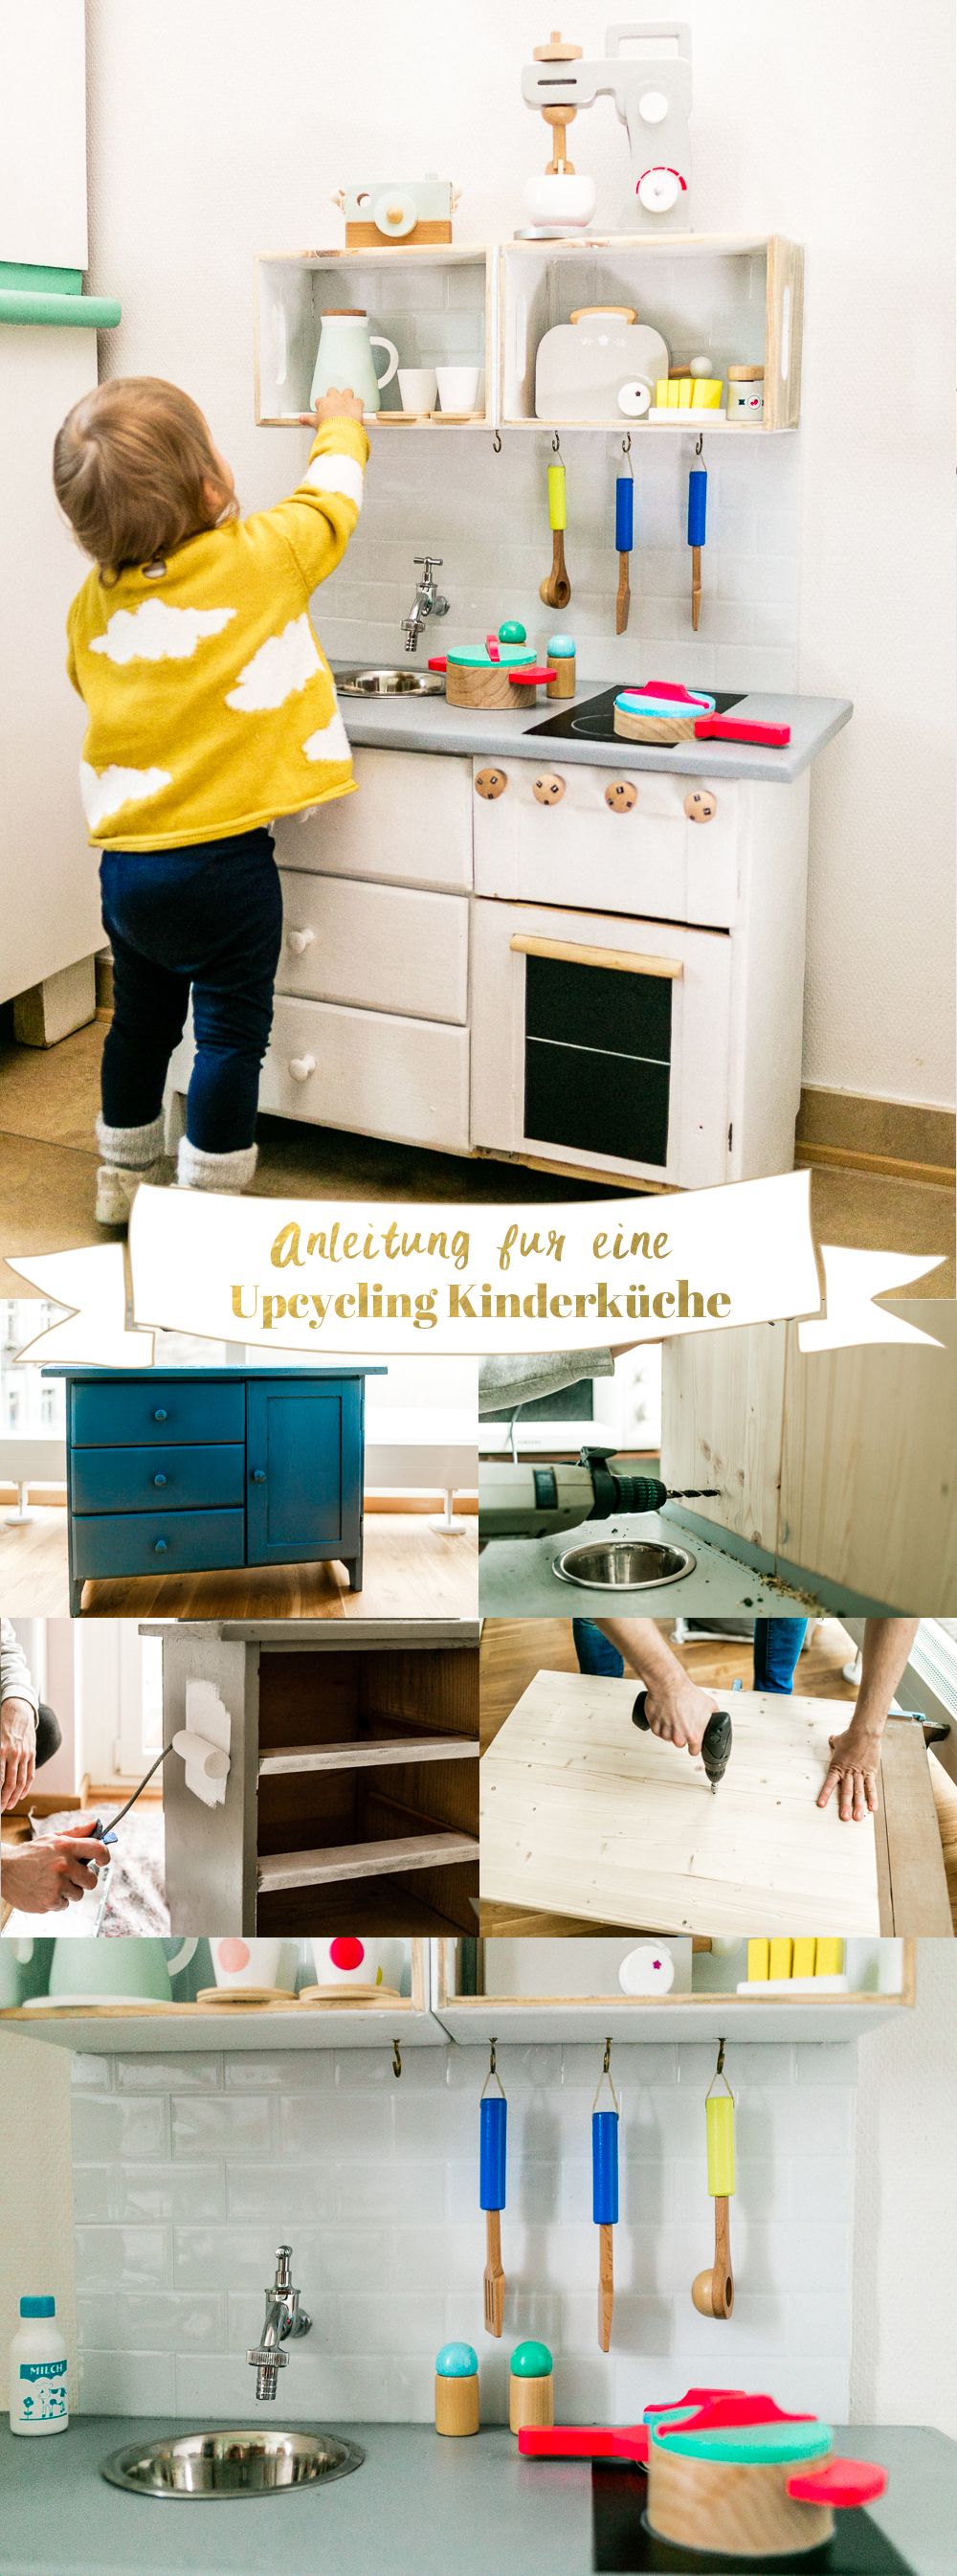 Upcycling Kinderkueche